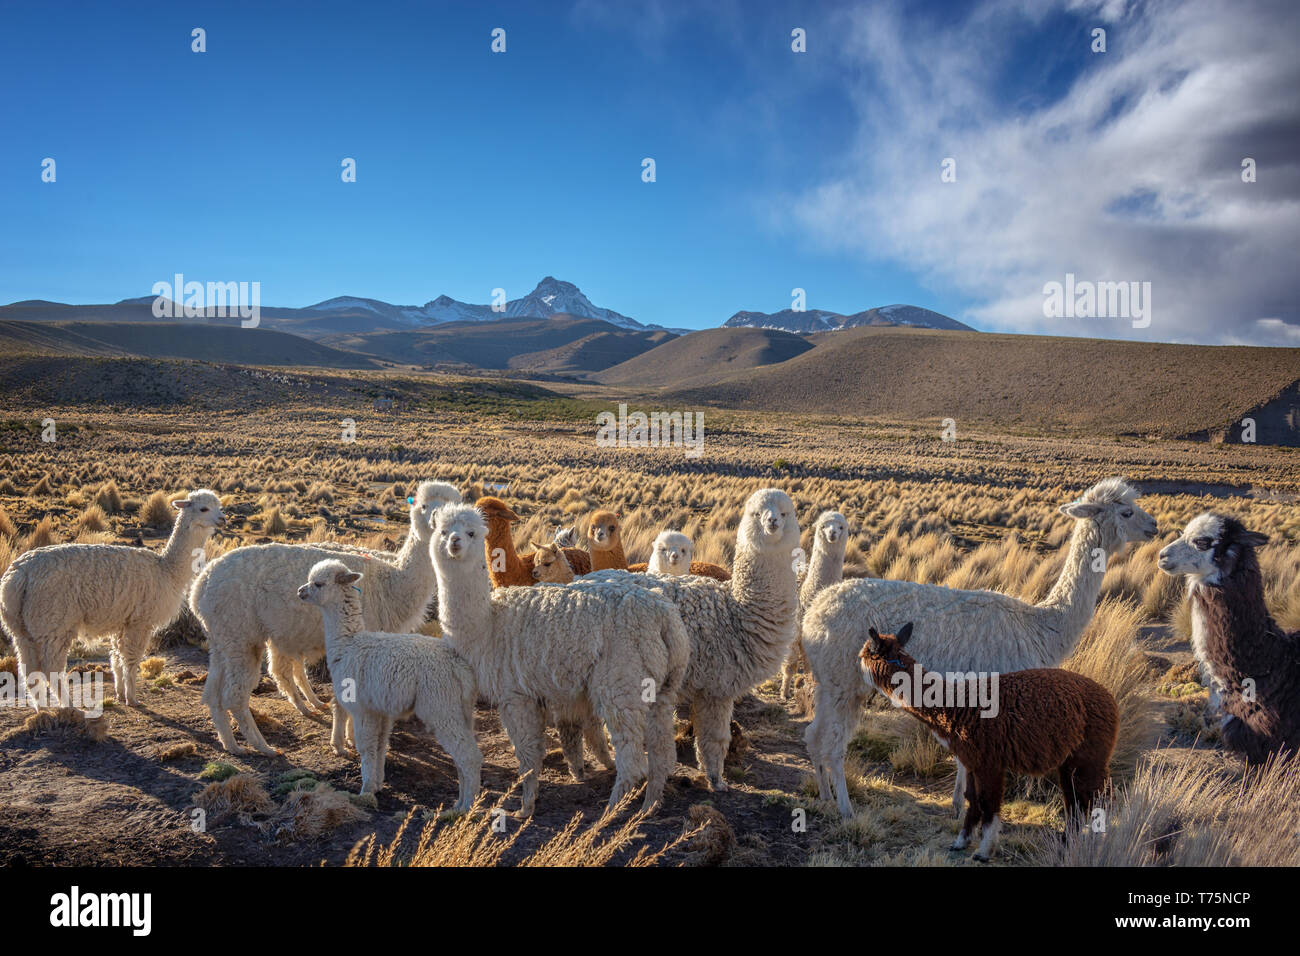 Herd of curious alpacas in Bolivia Stock Photo